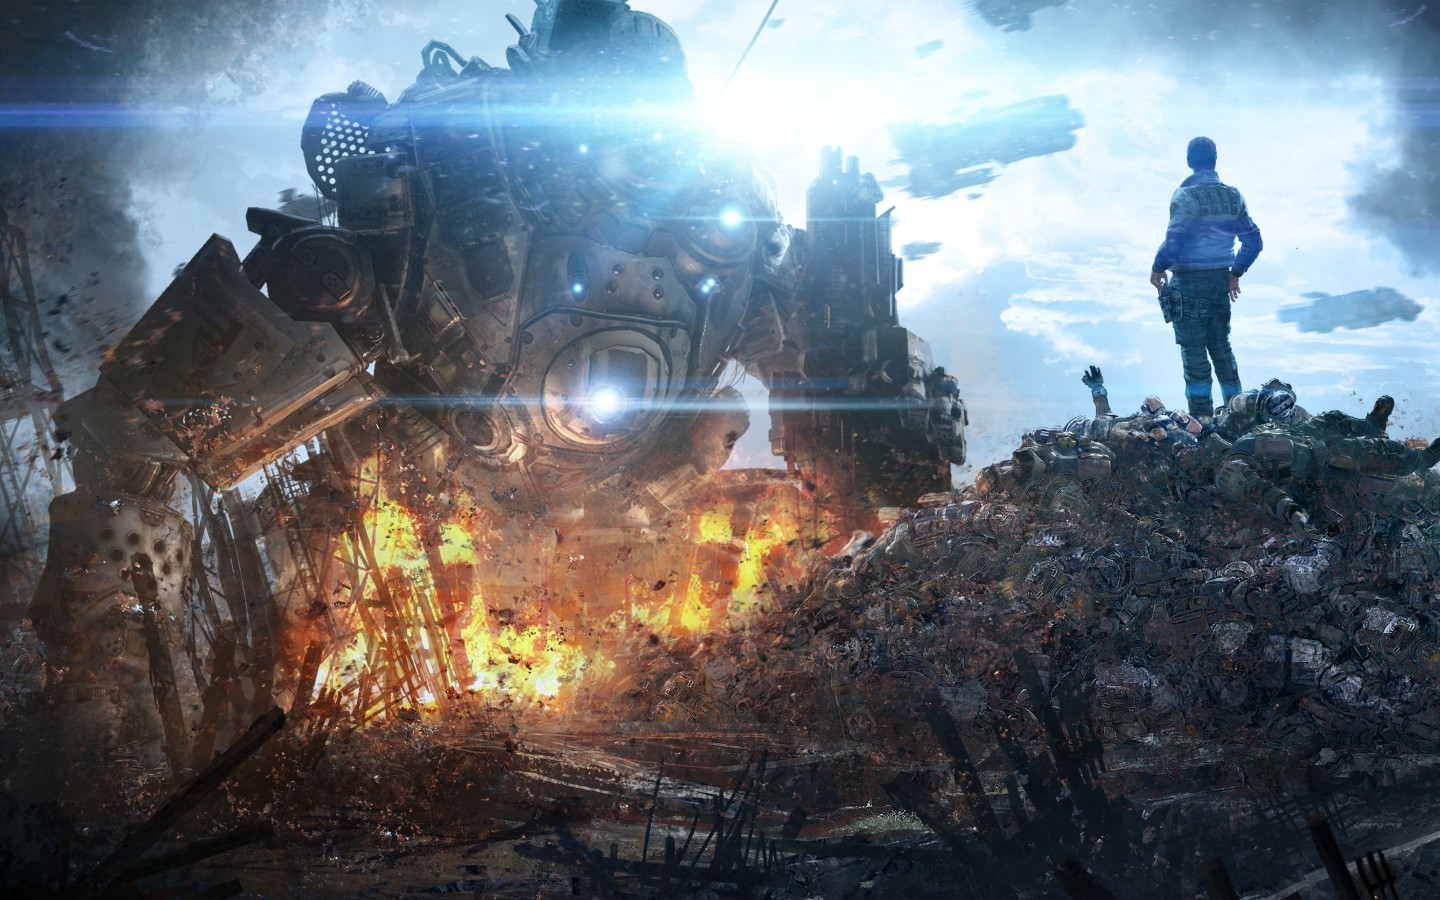 Wallpaper Destiny Hd Titanfall Game 2014 Wallpapers Hd Wallpapers Id 13310